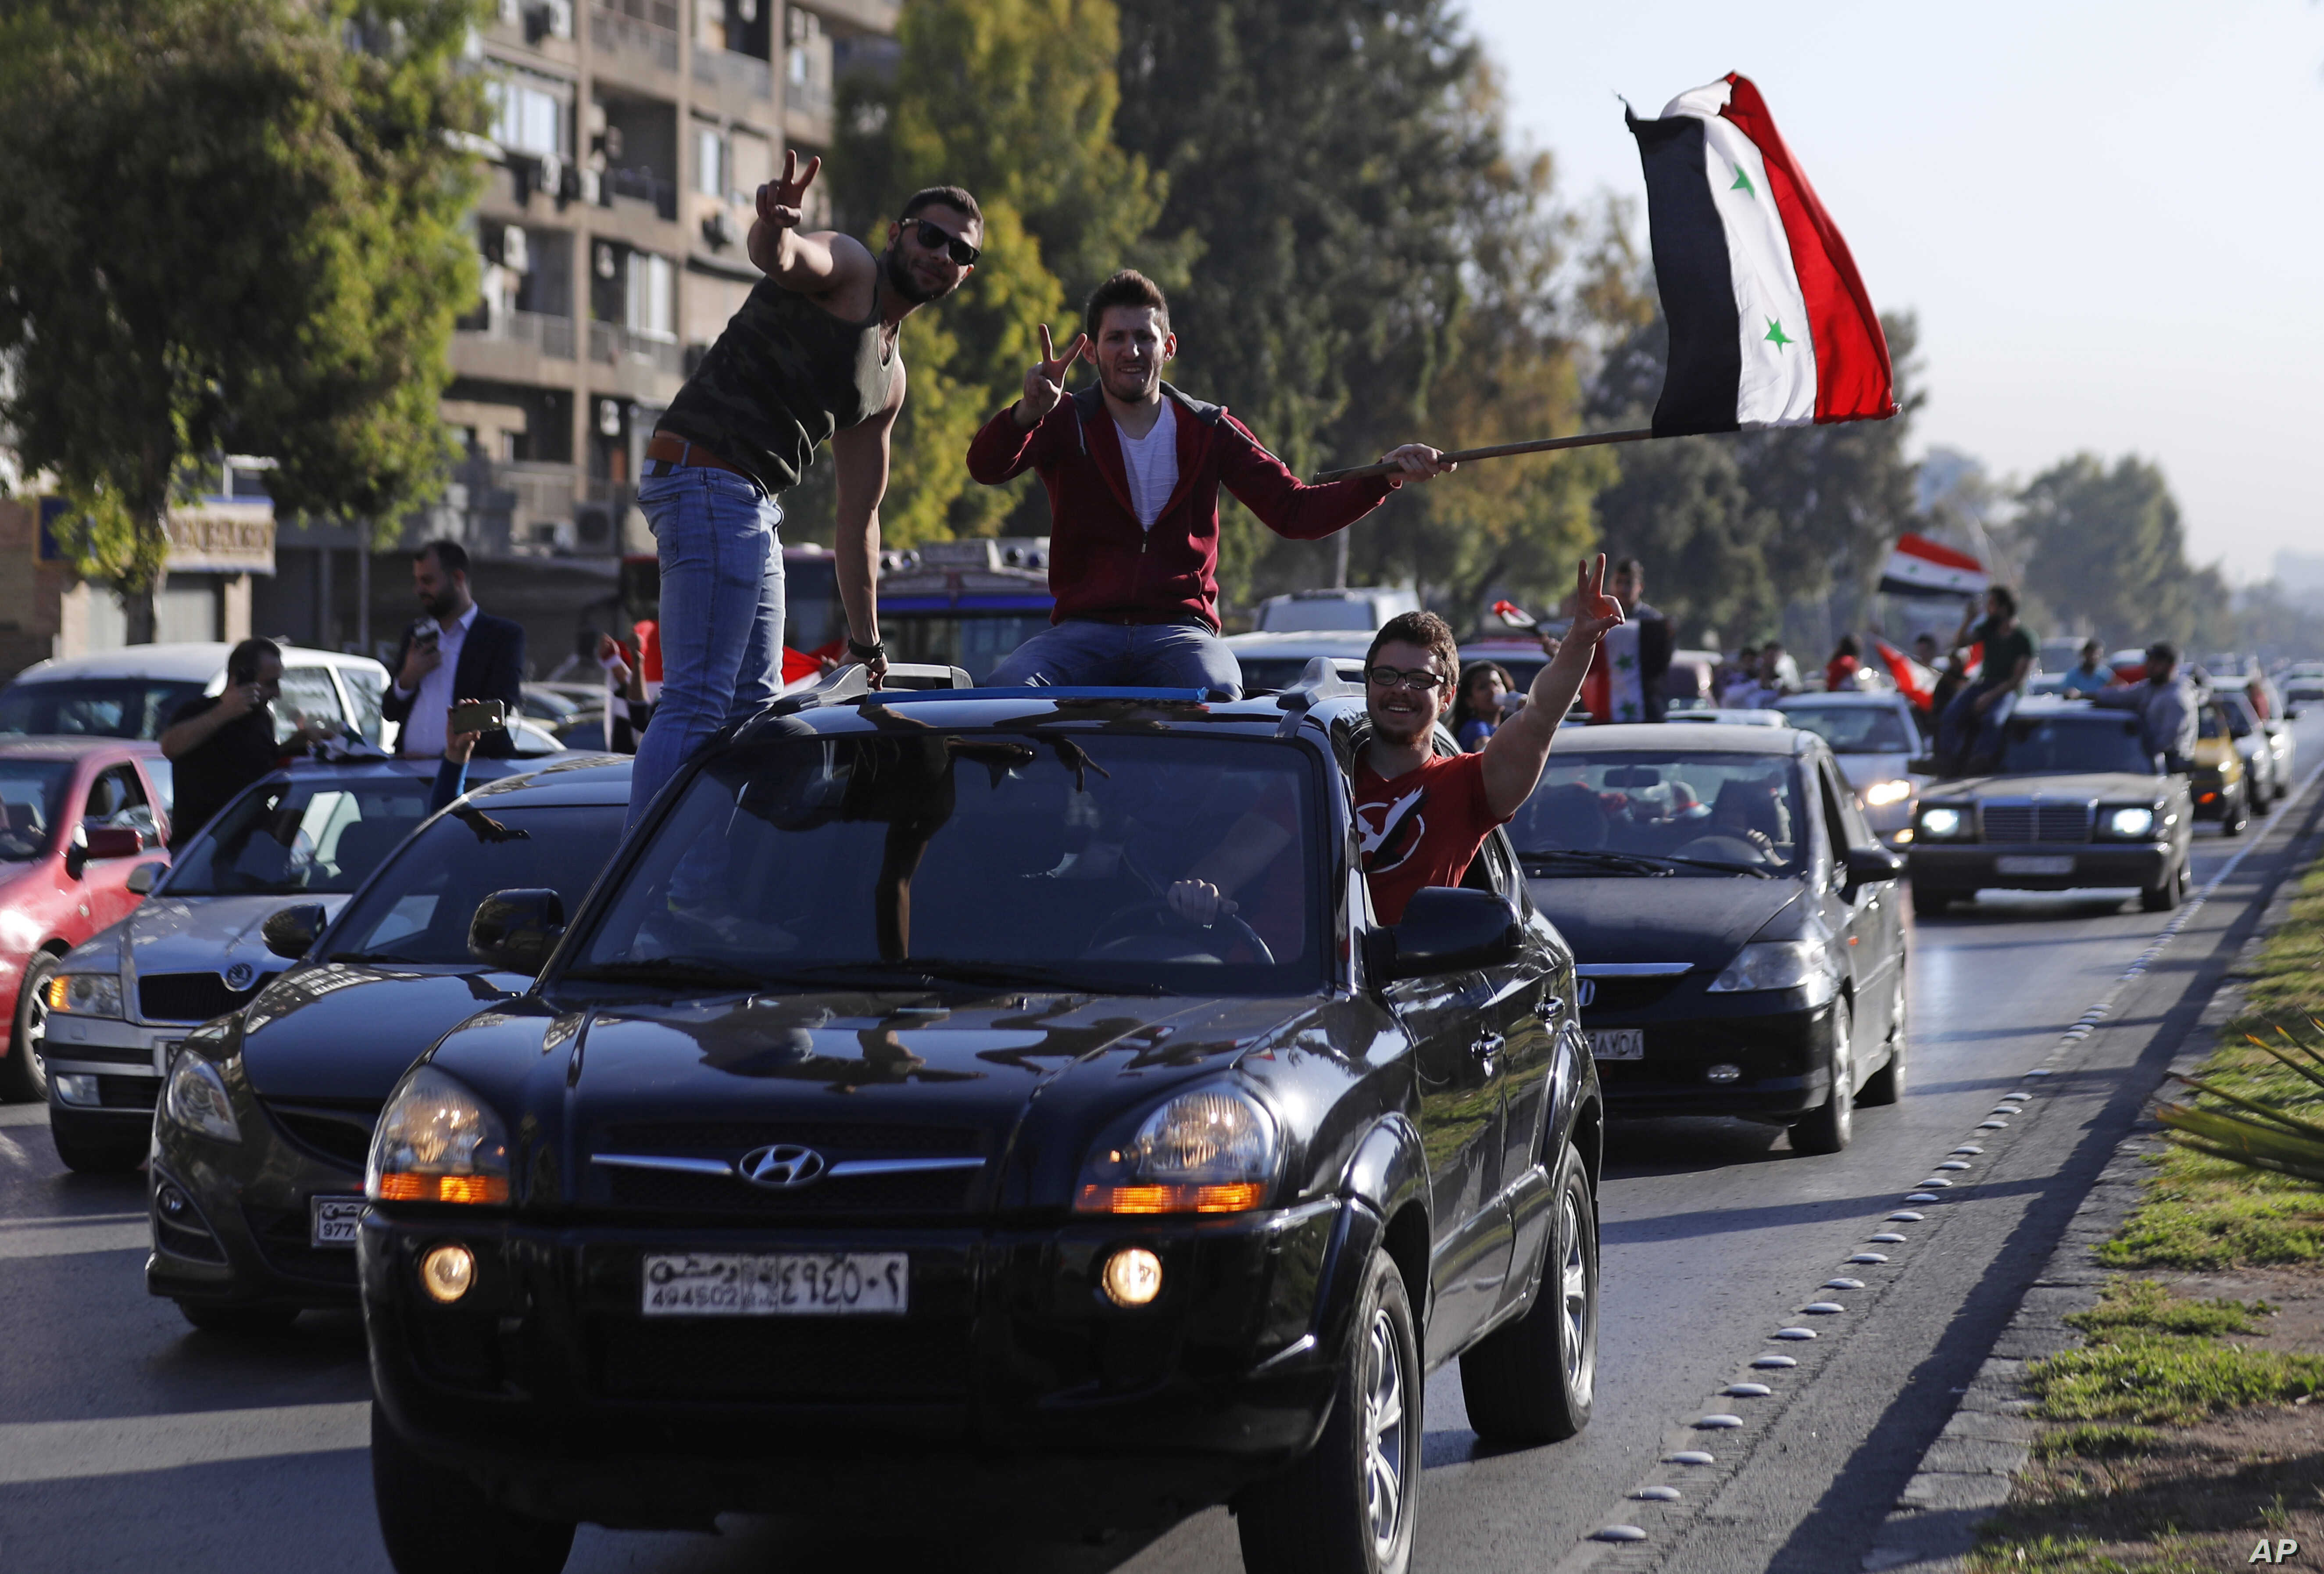 Hundreds of Syrians wave national flags and chant slogans against U.S. President Trump, April 14, 2018, following a wave of U.S., British and French military strikes to punish President Bashar Assad for suspected chemical attack against civilians, in...